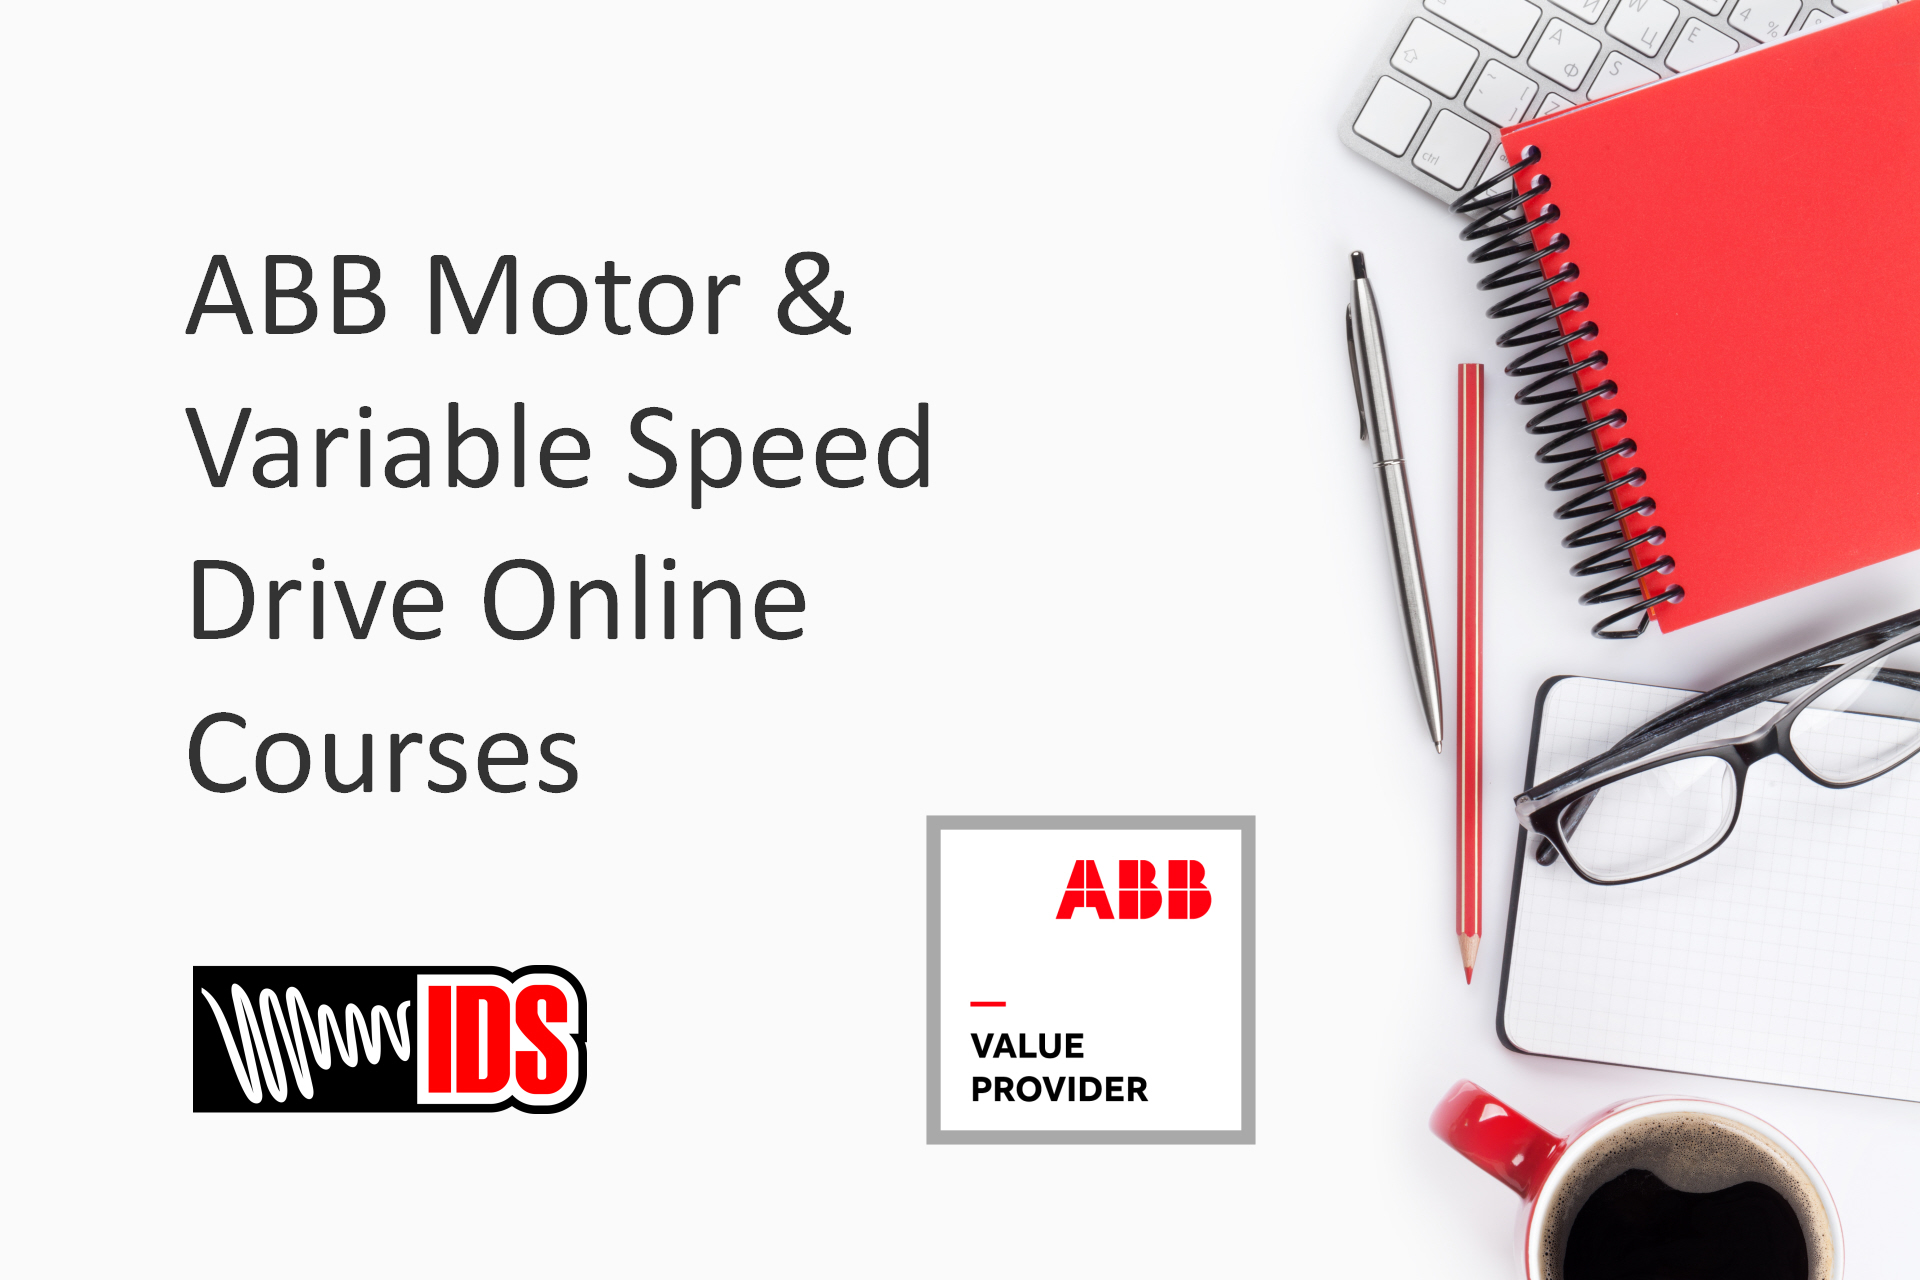 ABB Motor and Variable Speed Drive Online Courses